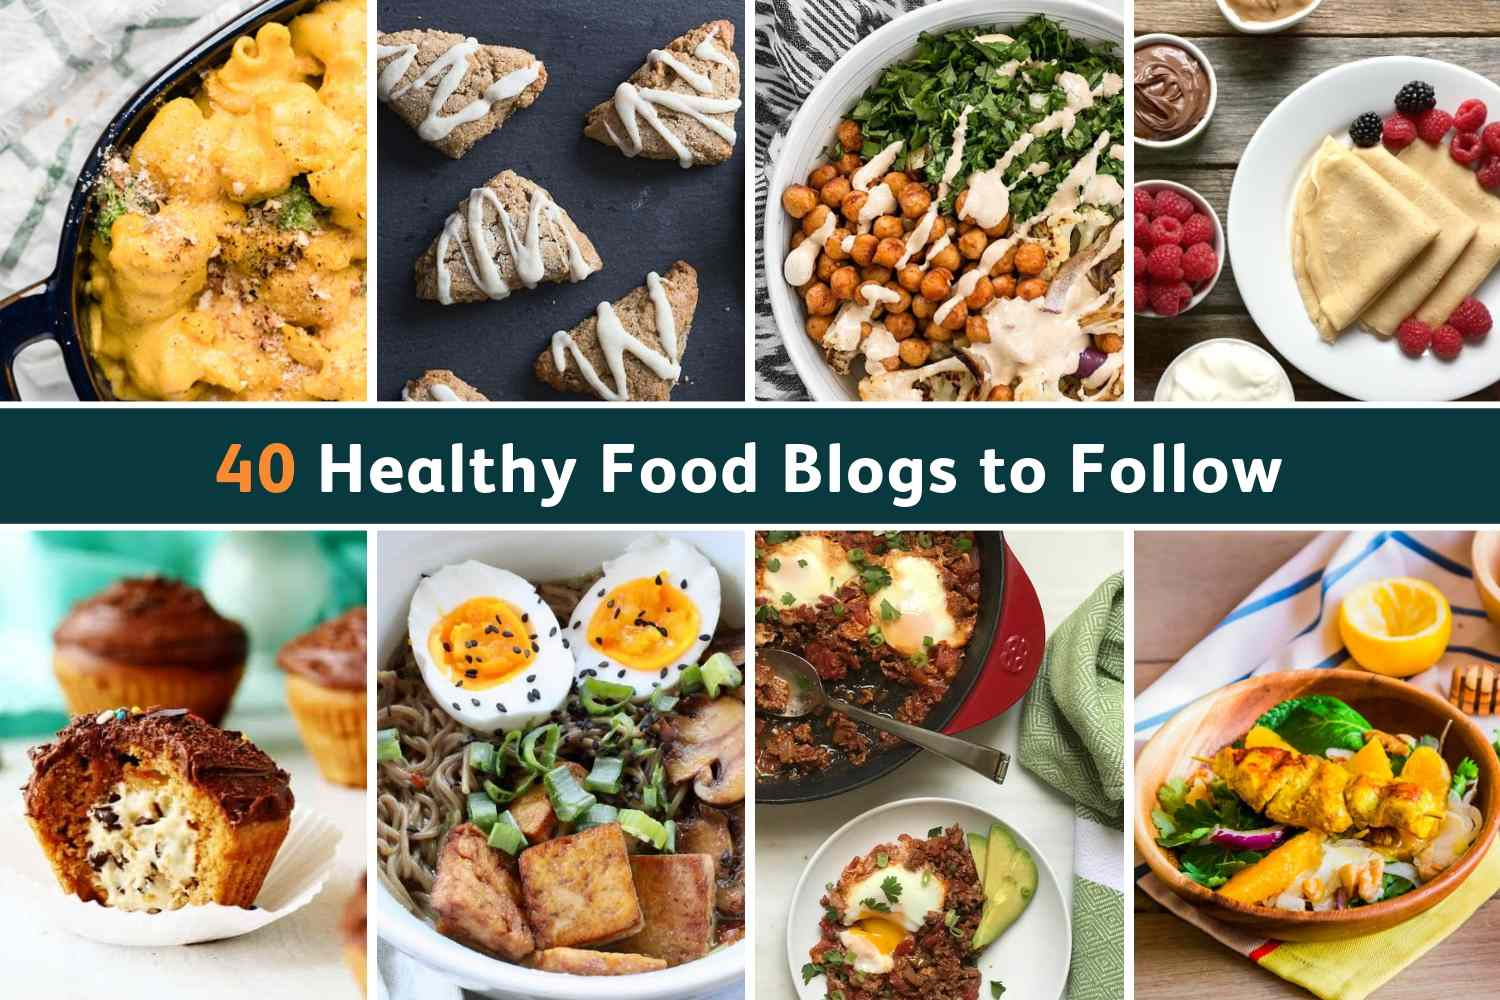 40 blogs de alimentos saludables a seguir en 2019